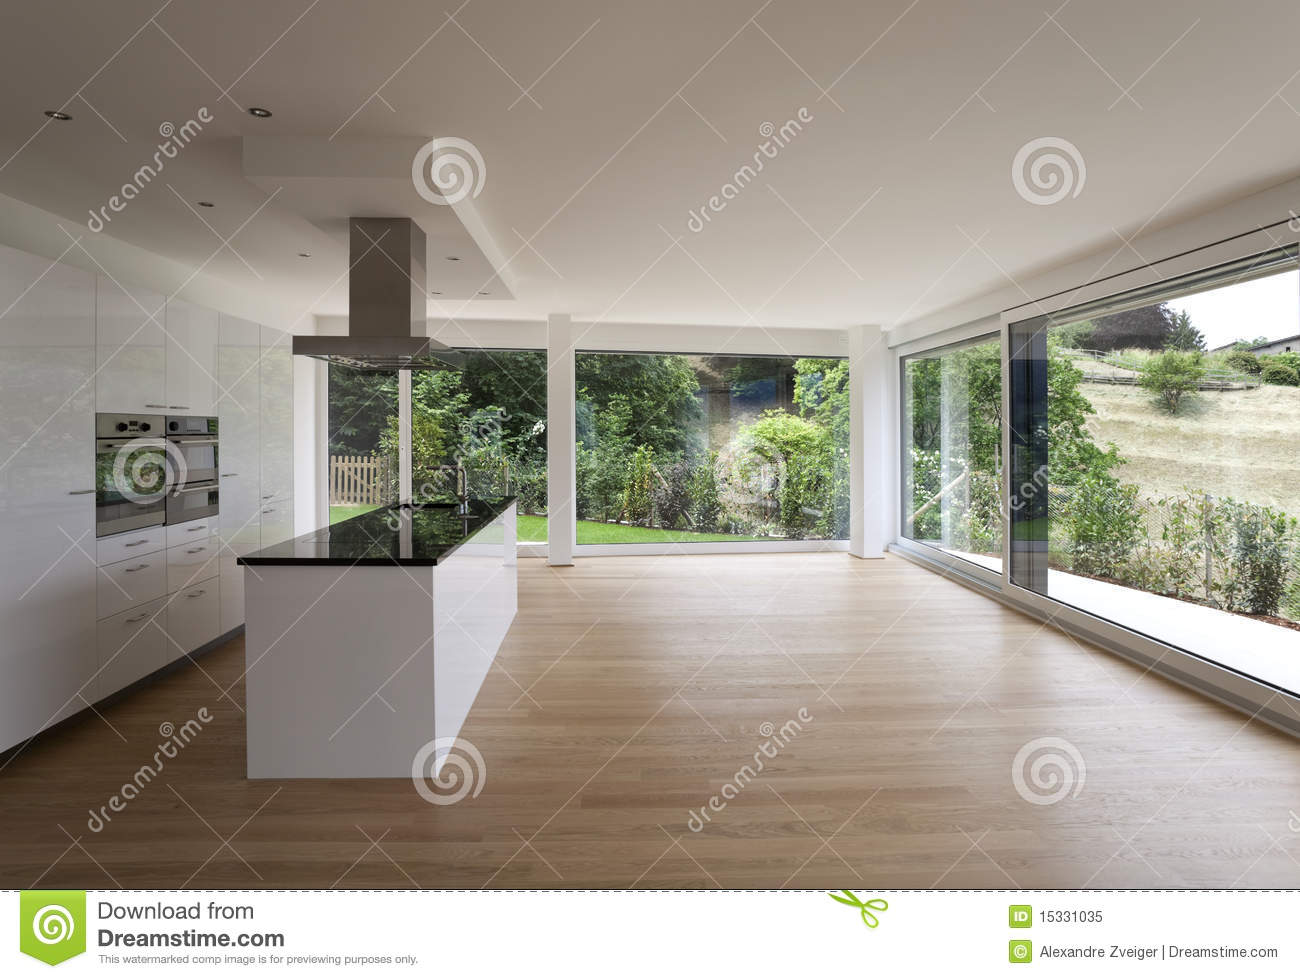 Bel int rieur d 39 une maison moderne photo libre de droits for Interieur moderne maison